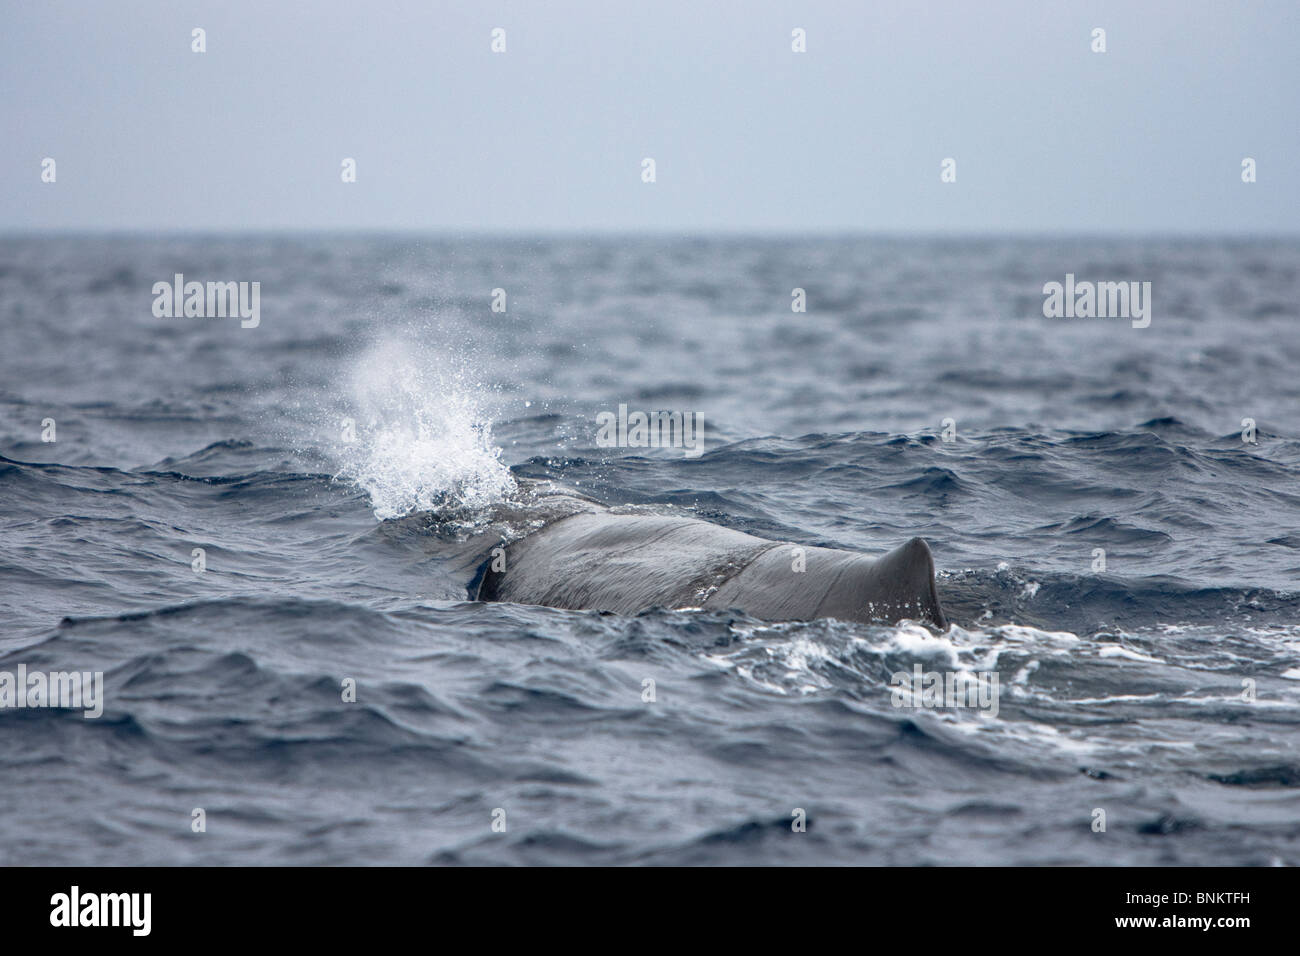 Sperm whale Cachalote Pottwal Physeter macrocephalus Pico Azores Portugal - Stock Image